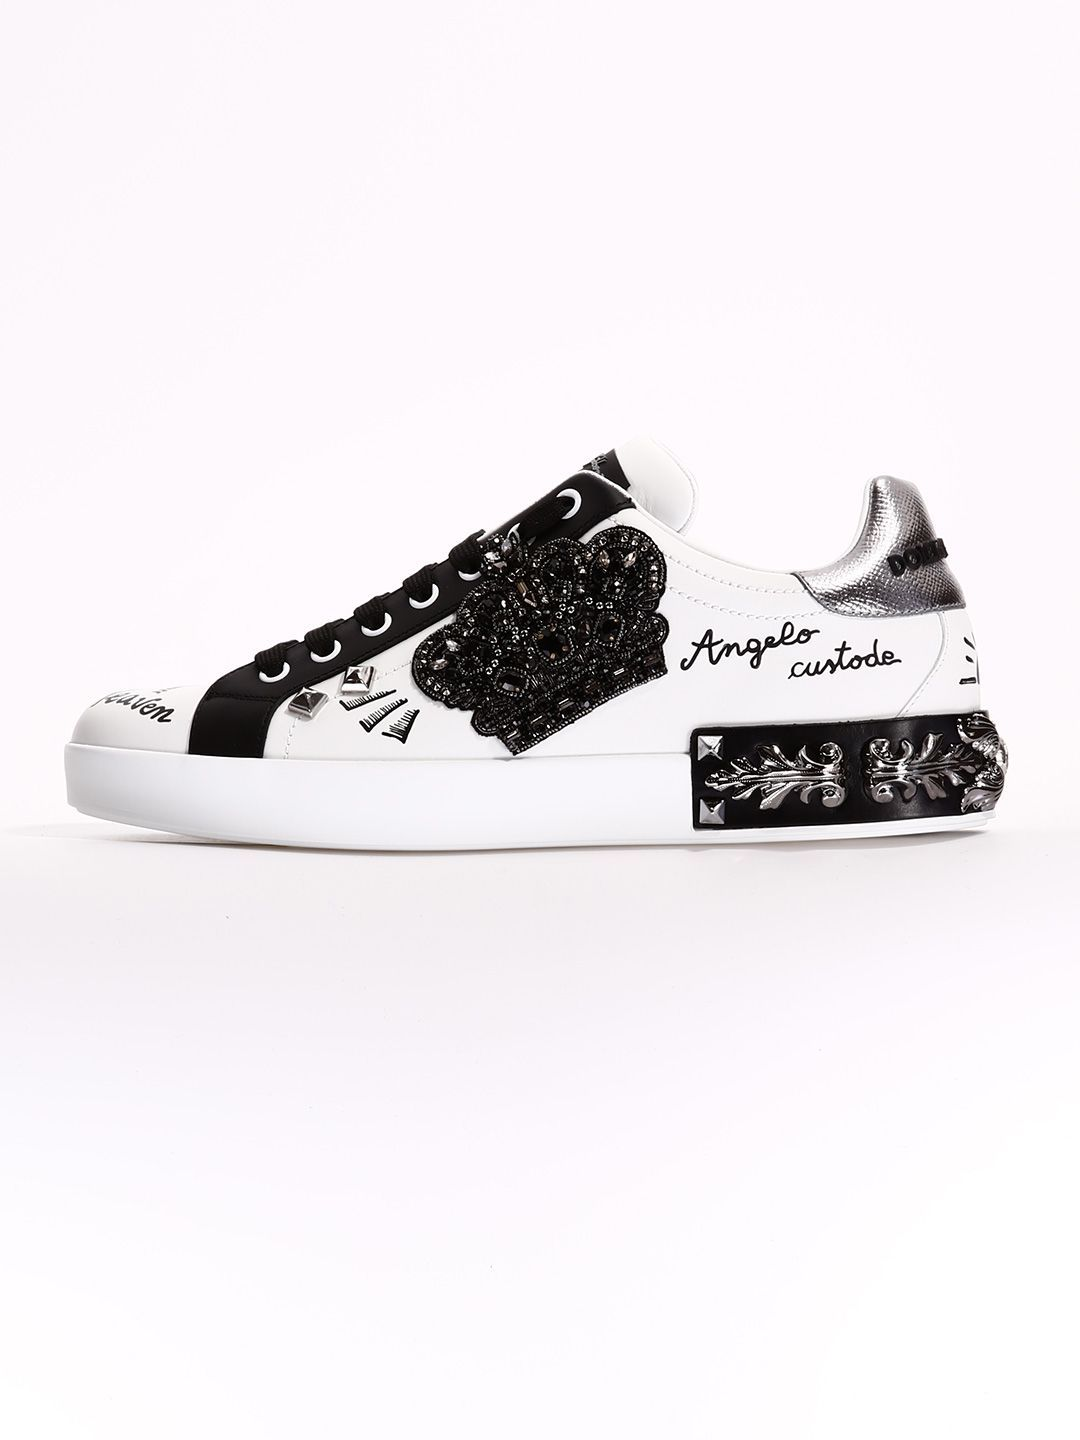 75e50f39251f DOLCE & GABBANA SNEAKERS PORTOFINO WITH PATCH. #dolcegabbana #shoes ...